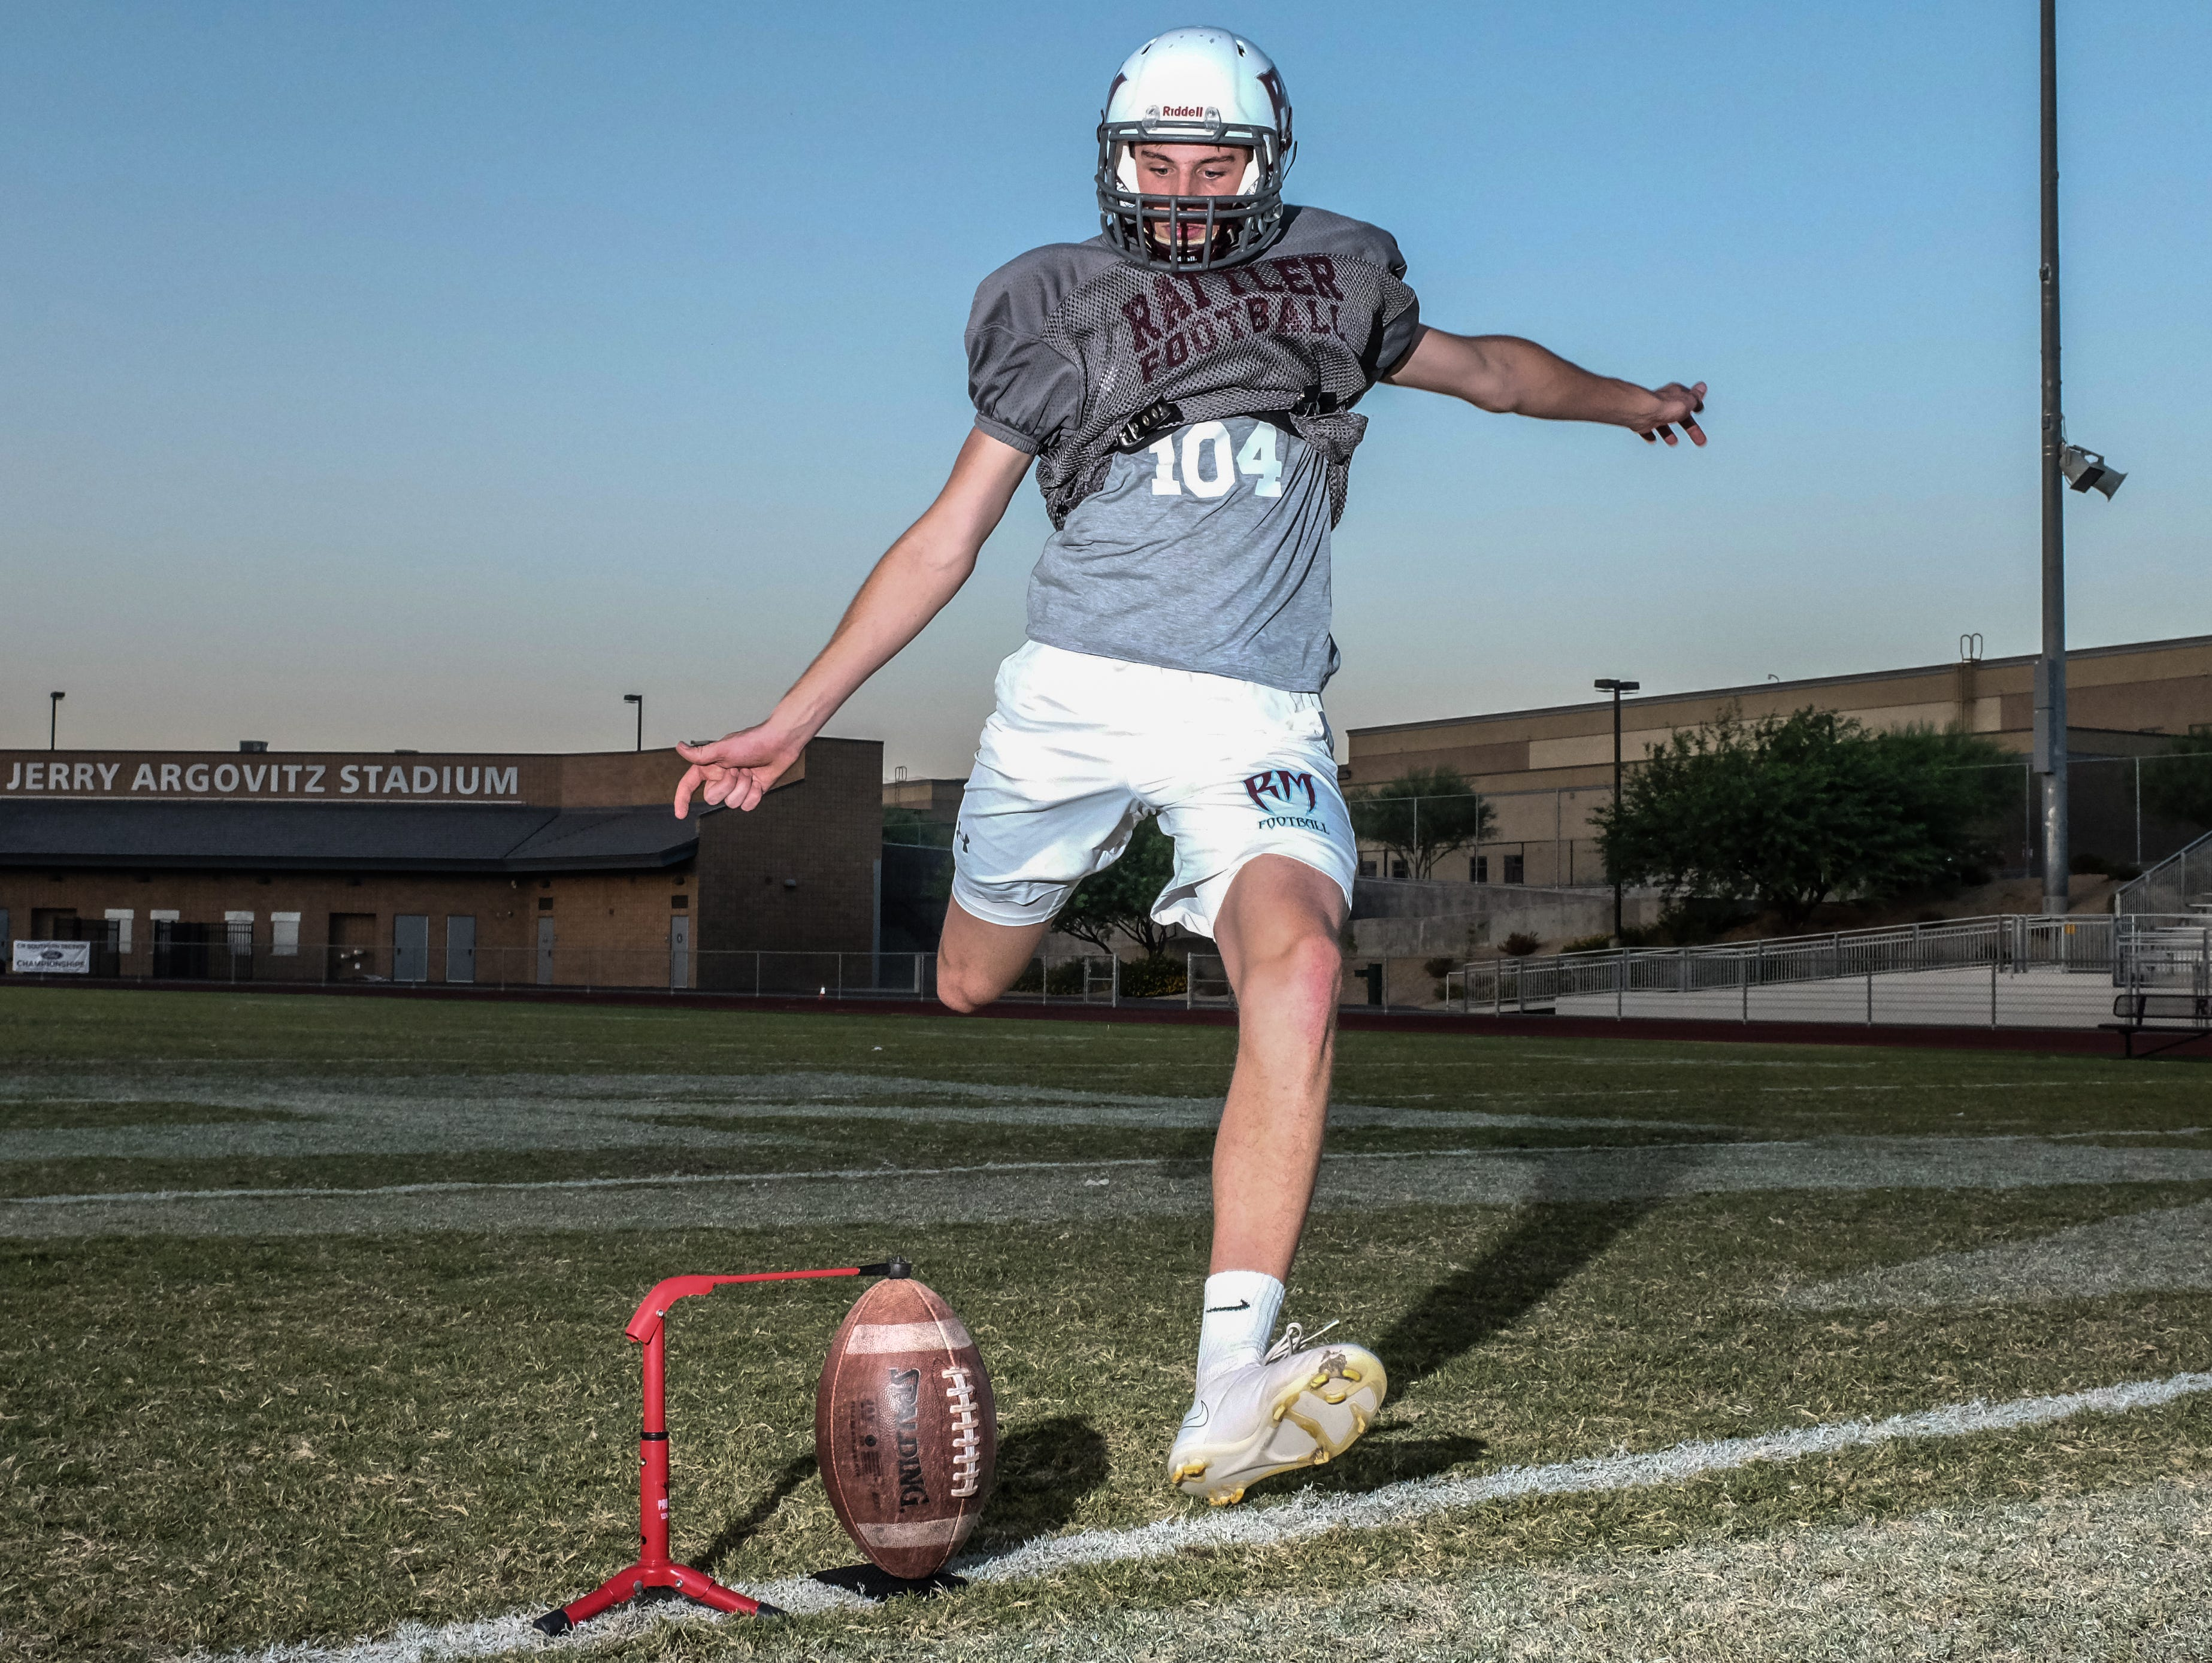 Rancho Mirage kicker Daniel Whelan kicks a field goal after practice on Wednesday, September 7, 2016 at Rancho Mirage High School. Whelan missed a 65-yard field goal by a few feet last Friday almost beating the NFL record of 64-yard.